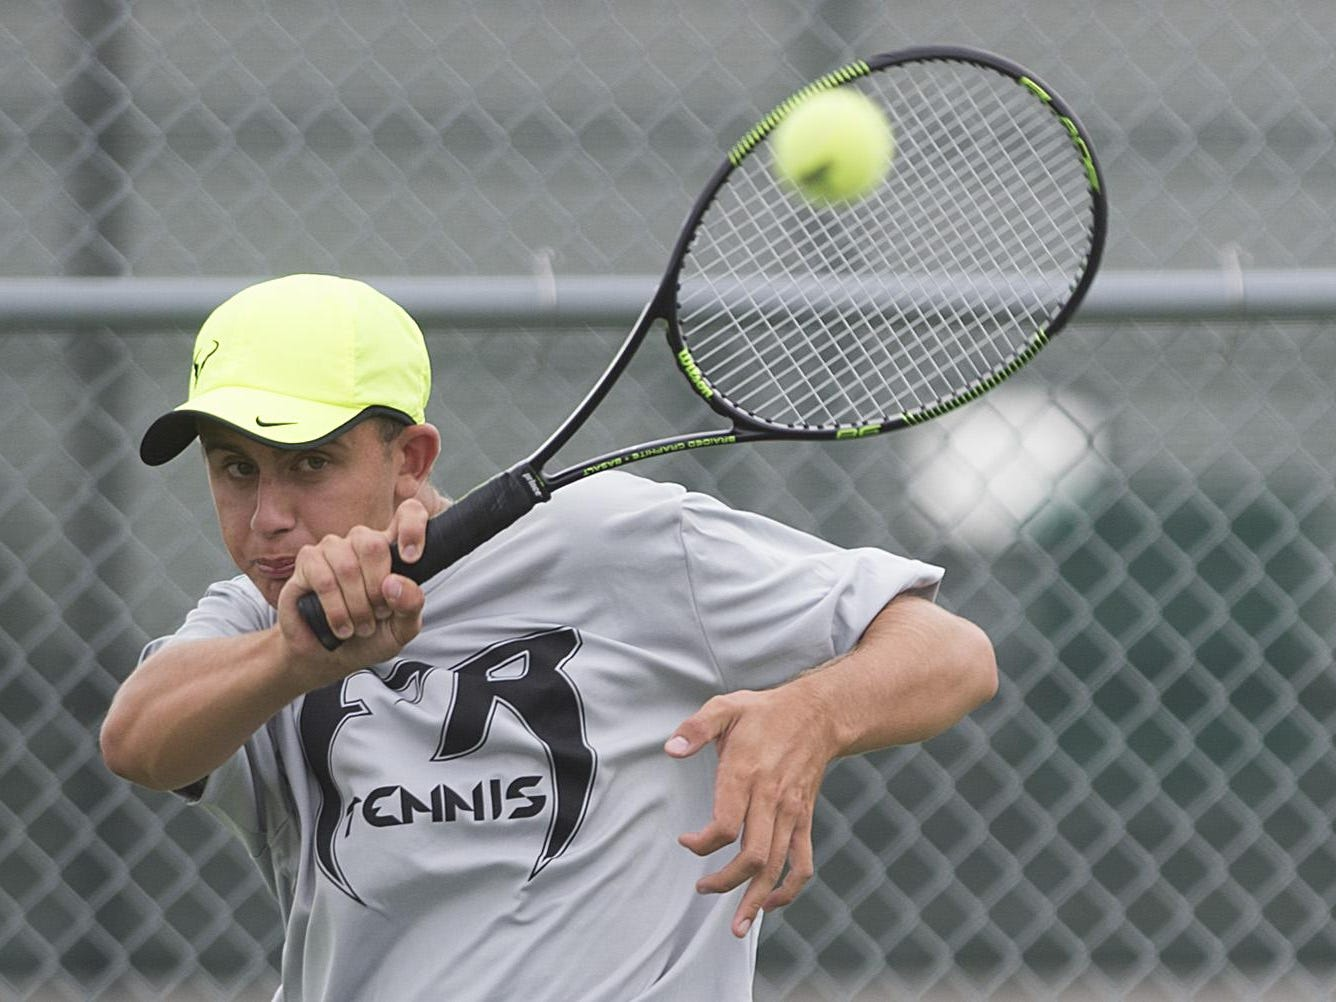 Fossil Ridge High School tennis player Jackson Johar will compete in the state tournament beginning Thursday at No. 2 singles.